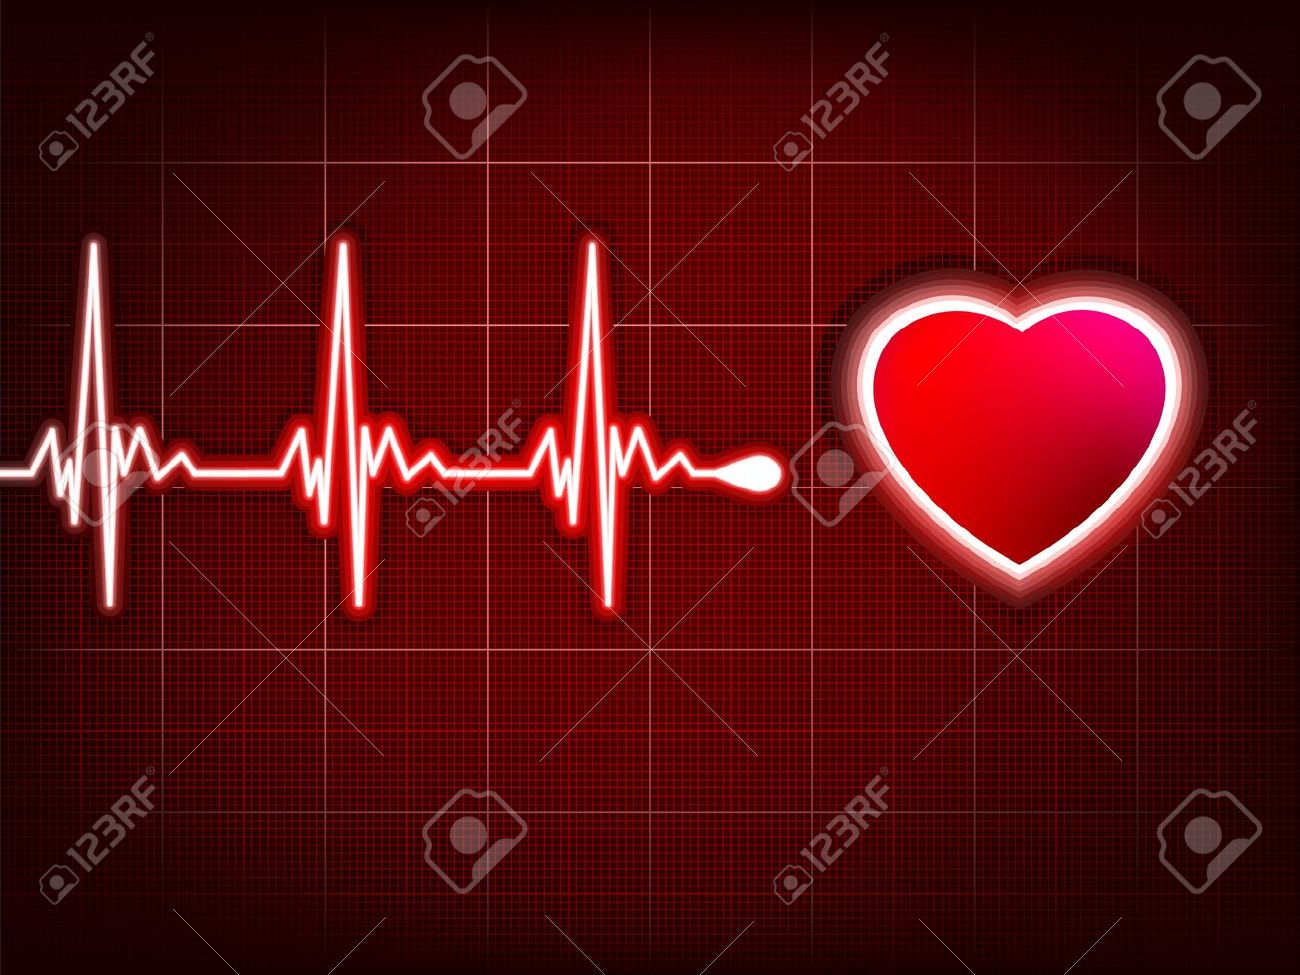 Heart cardiogram with shadow on it deep red. Stock Vector - 10687362